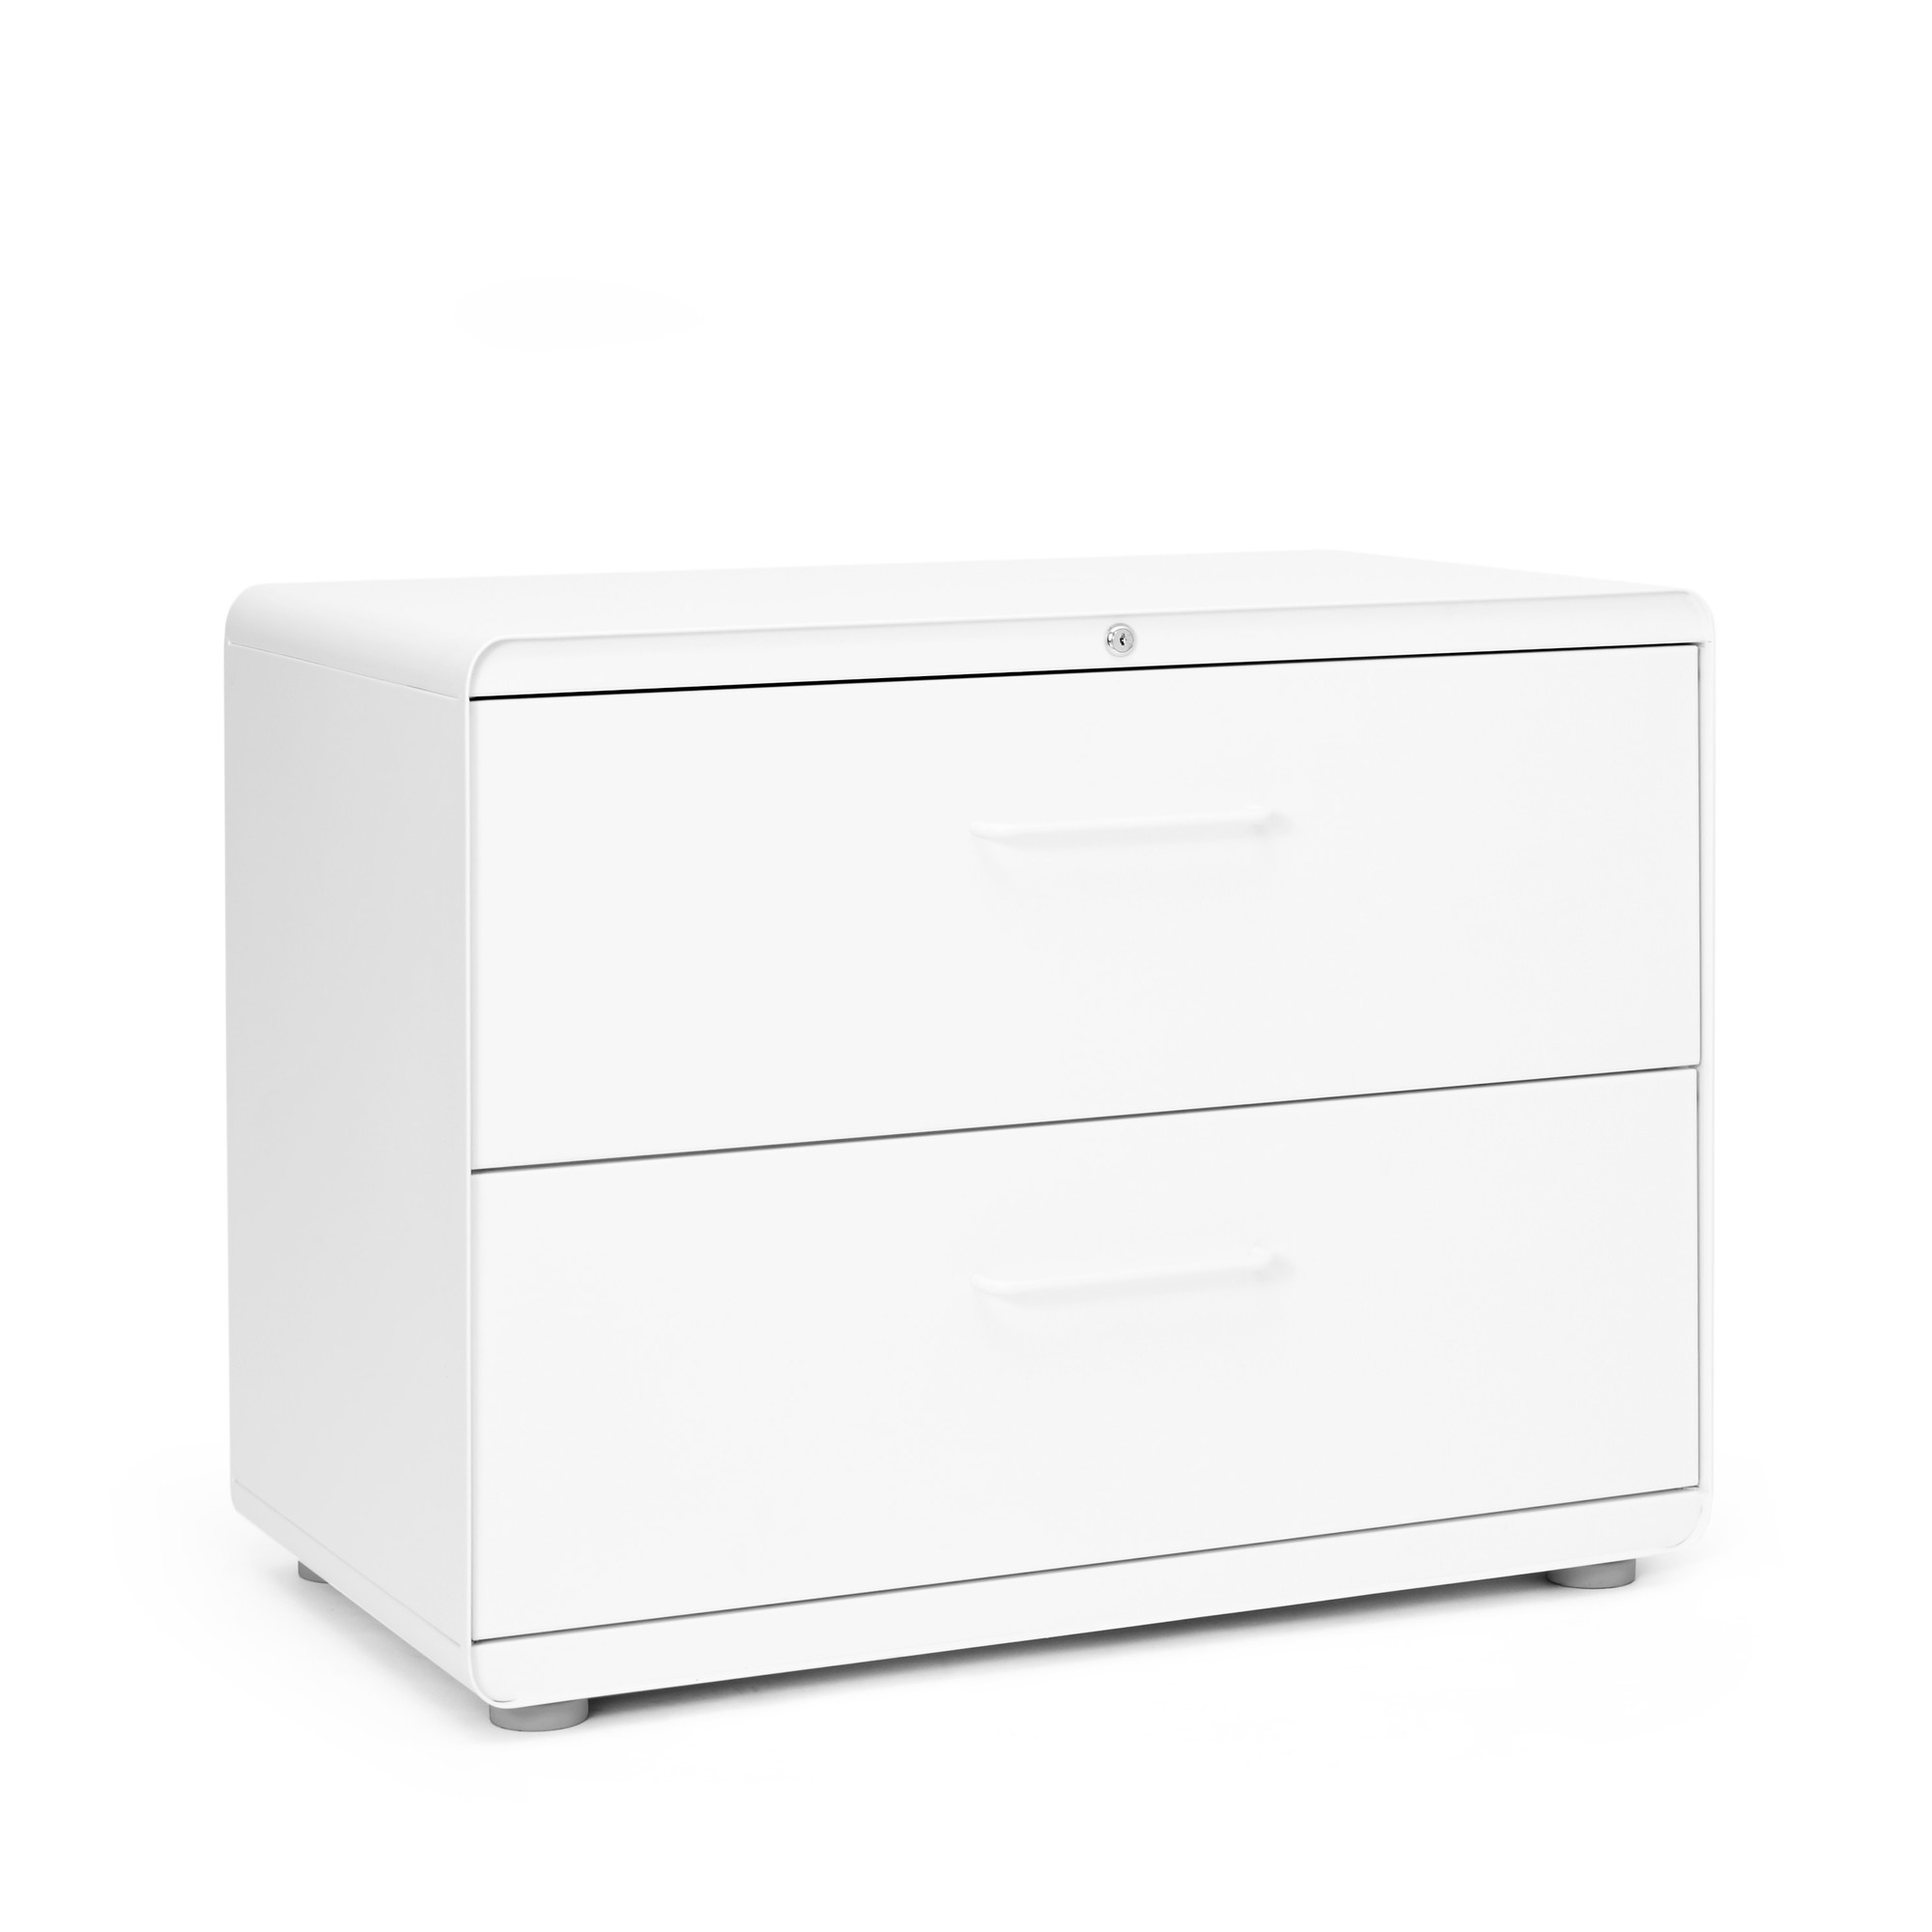 White Stow 2 Drawer Lateral File Cabinet File Cabinets Storage Poppin Filing Cabinet Lateral File Cabinet White File Cabinet What is a lateral file cabinet